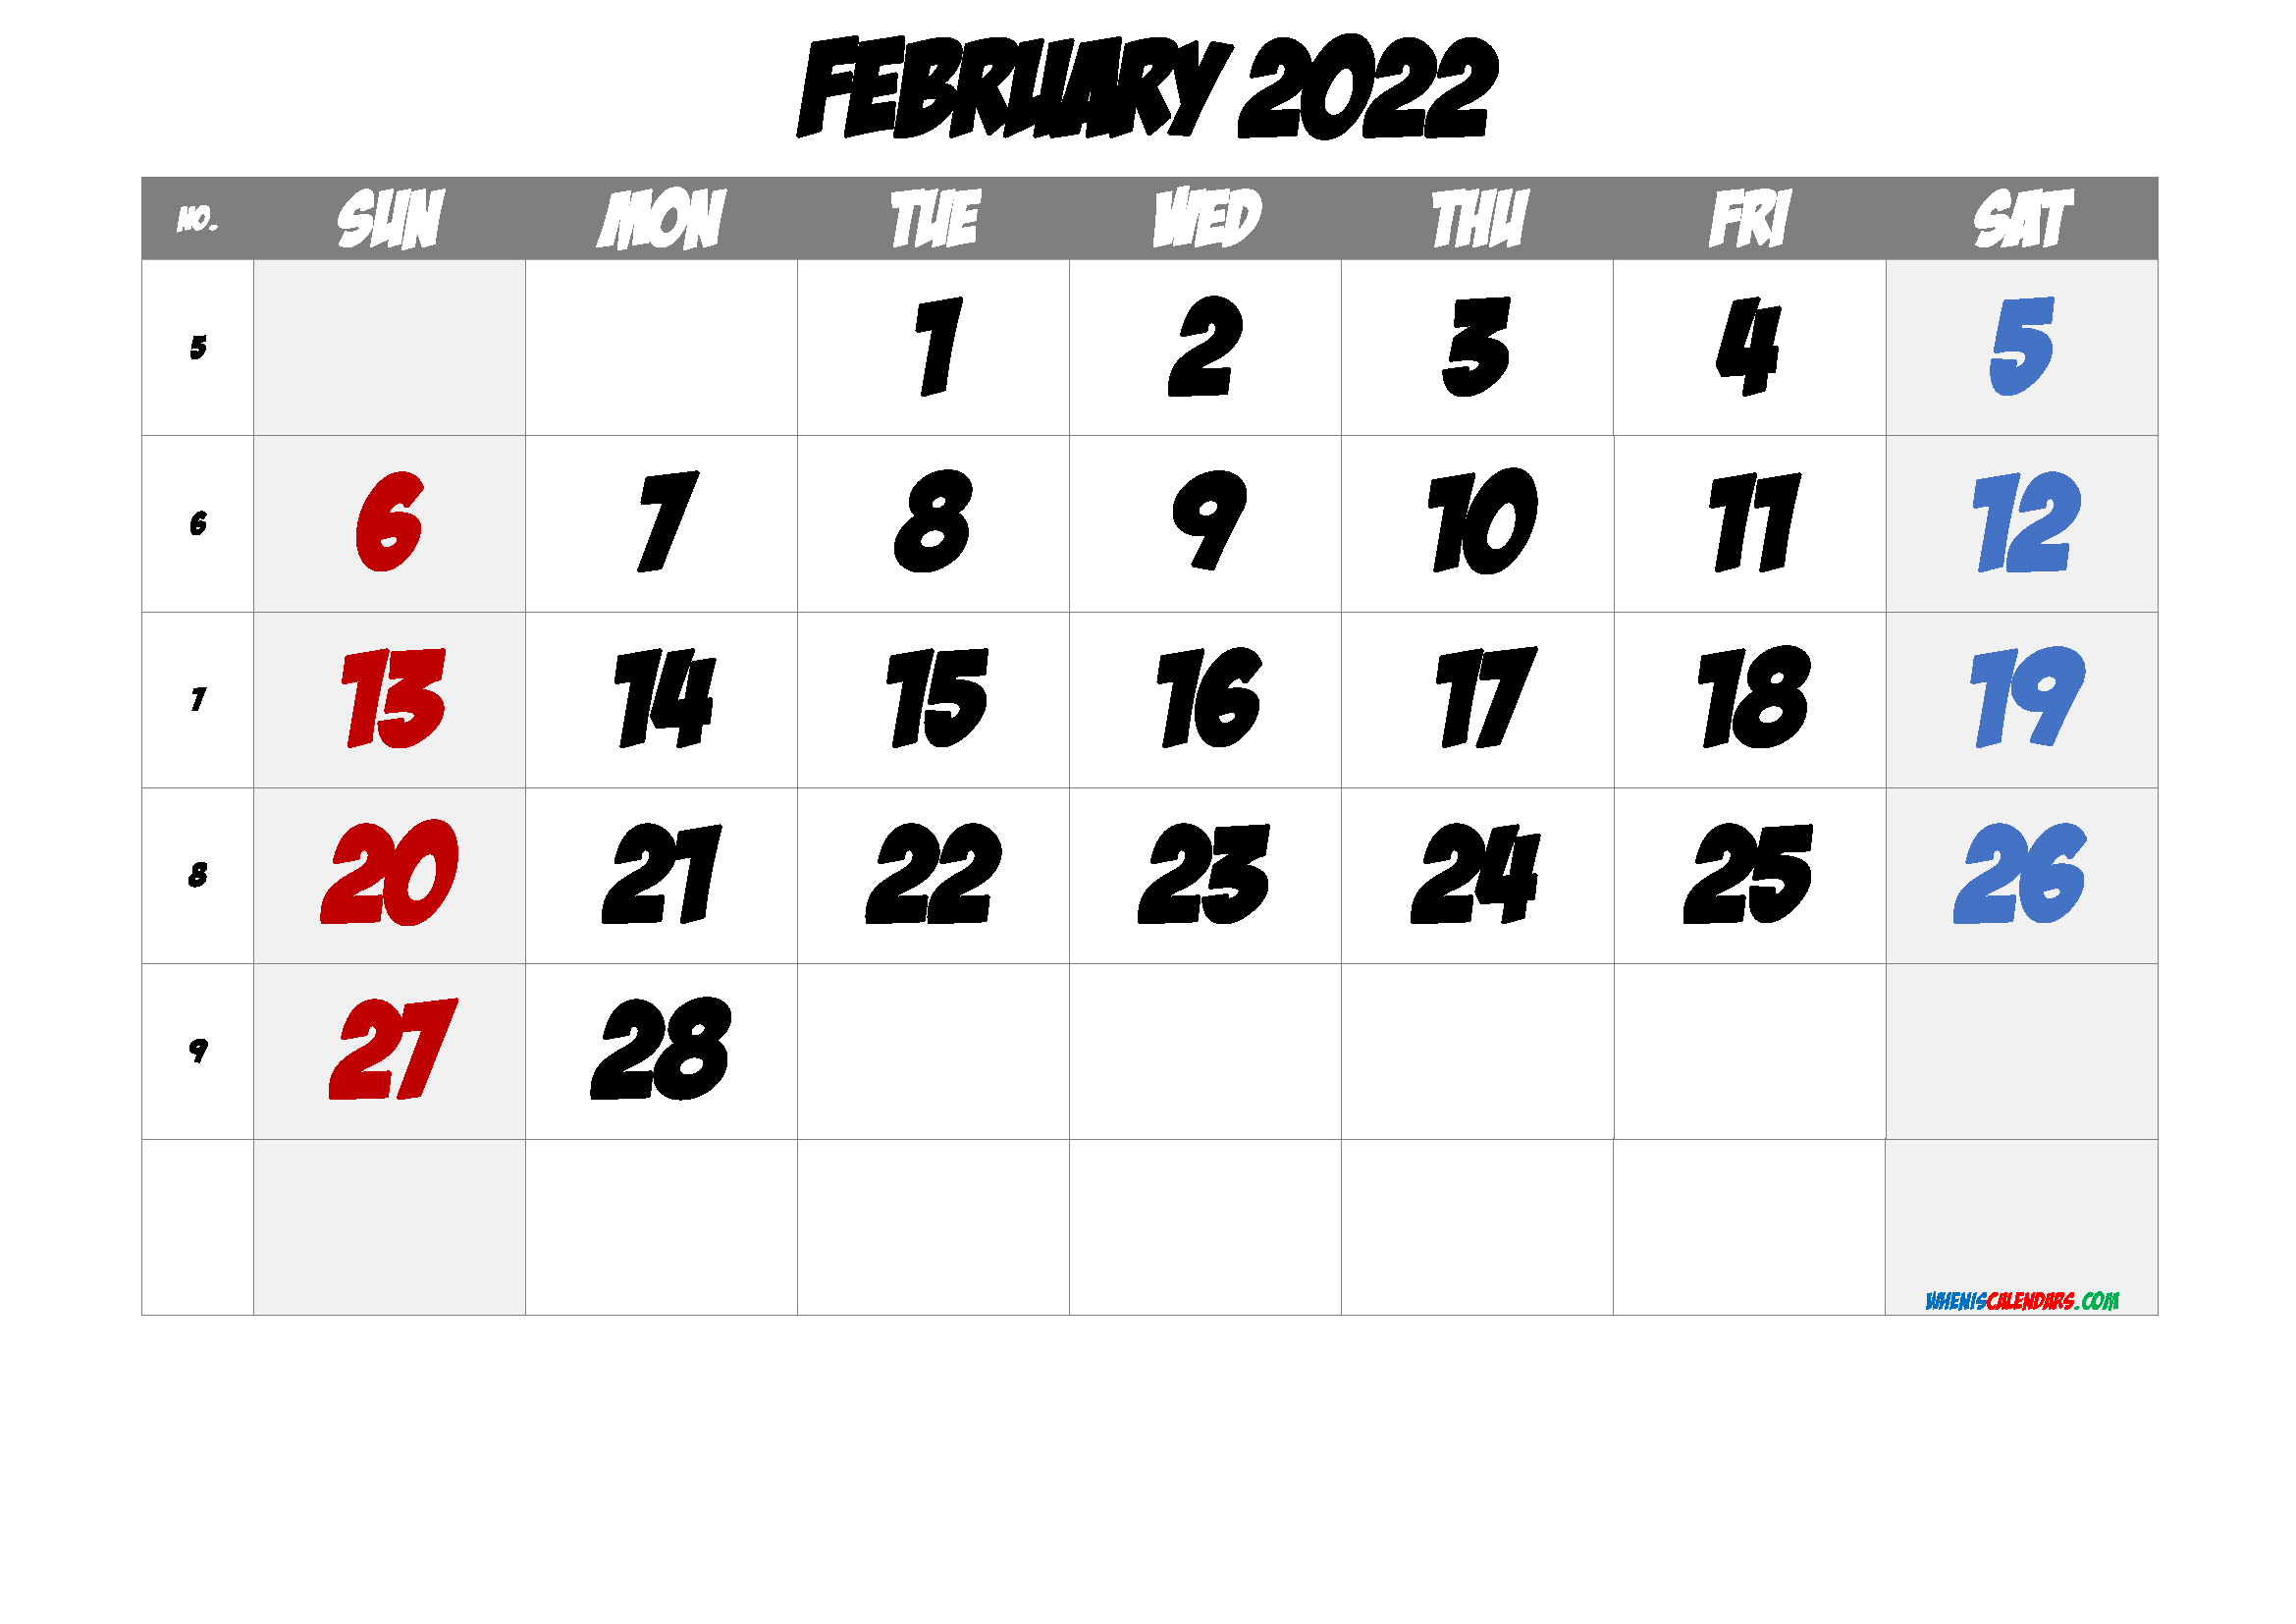 February 2022 Printable Calendar with Week Numbers